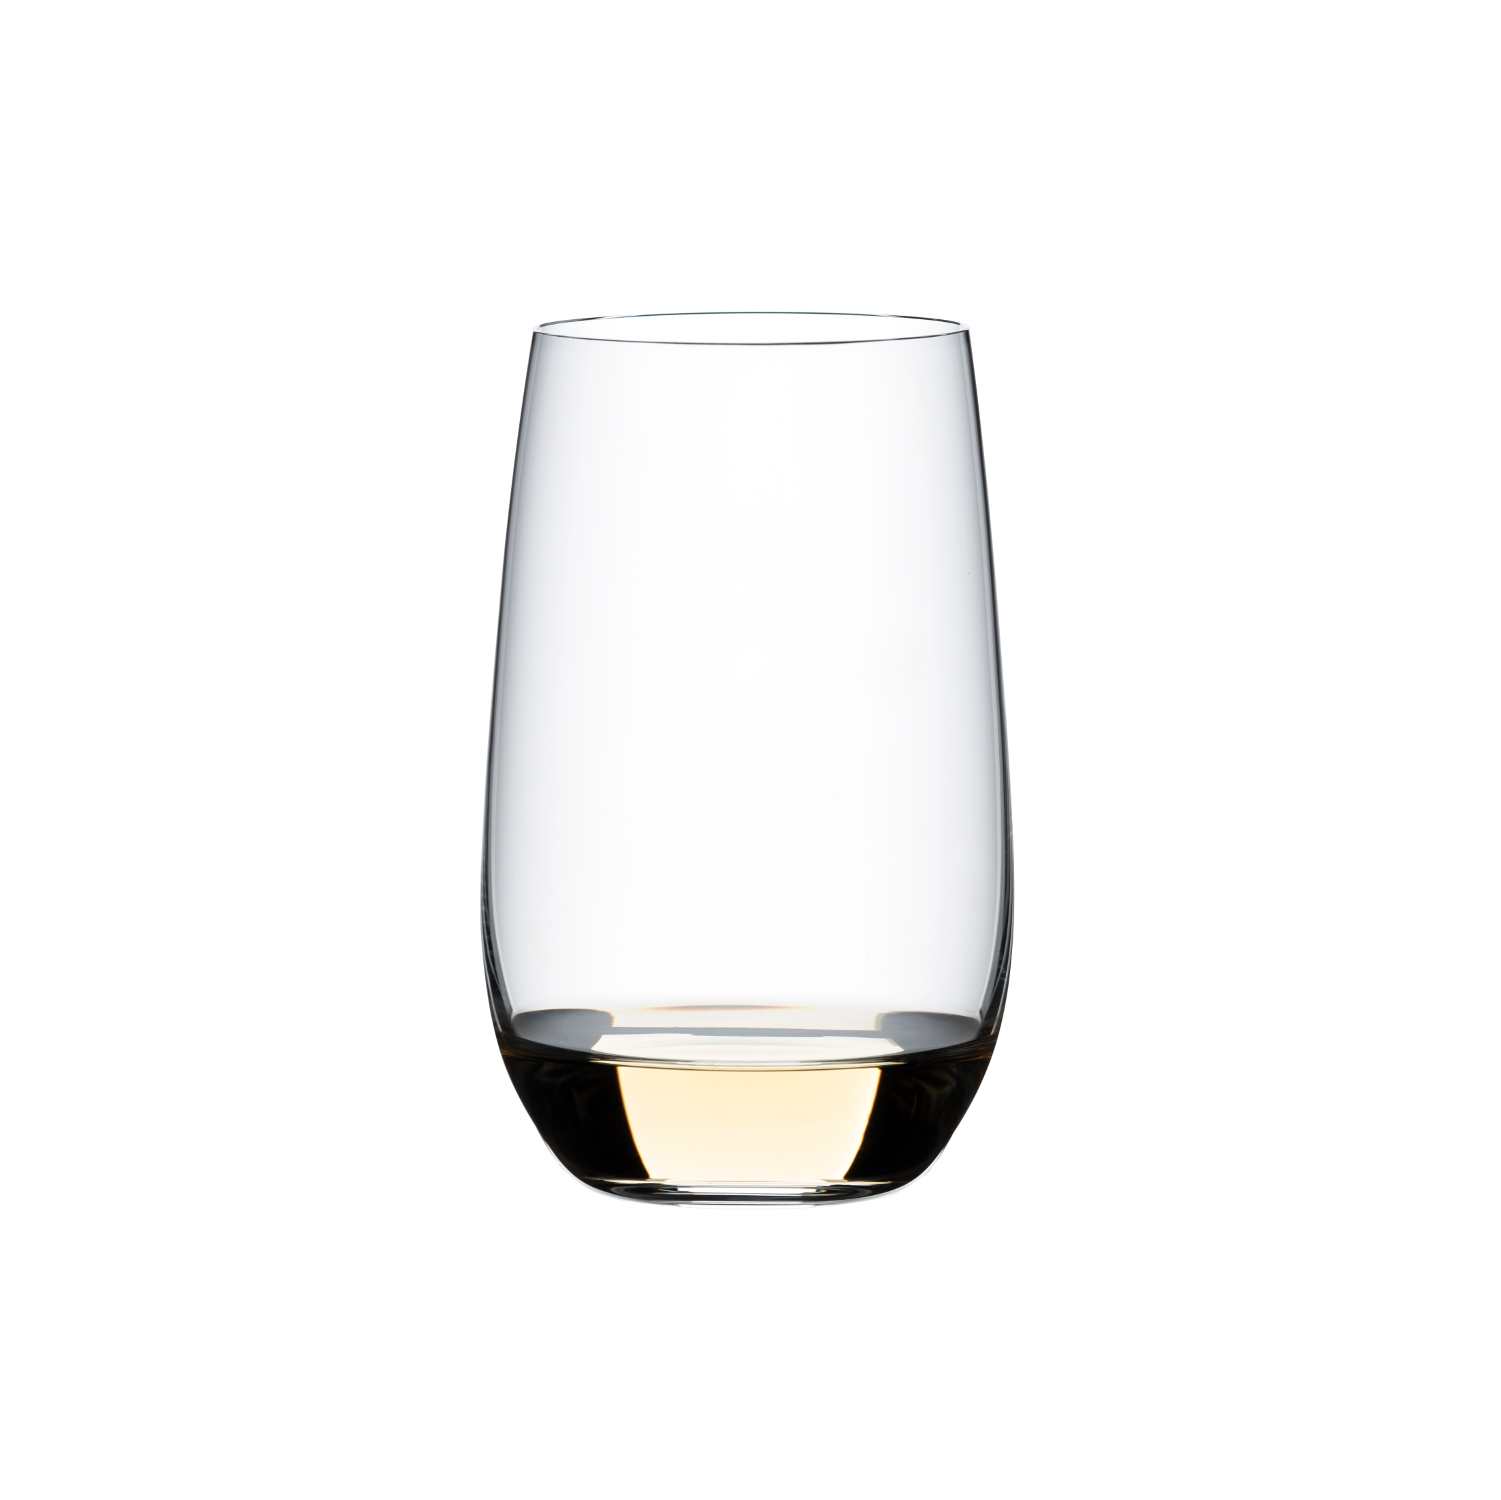 Riedel O Wine Crystal 6 Ounce Tequila Tumbler, Set of 2